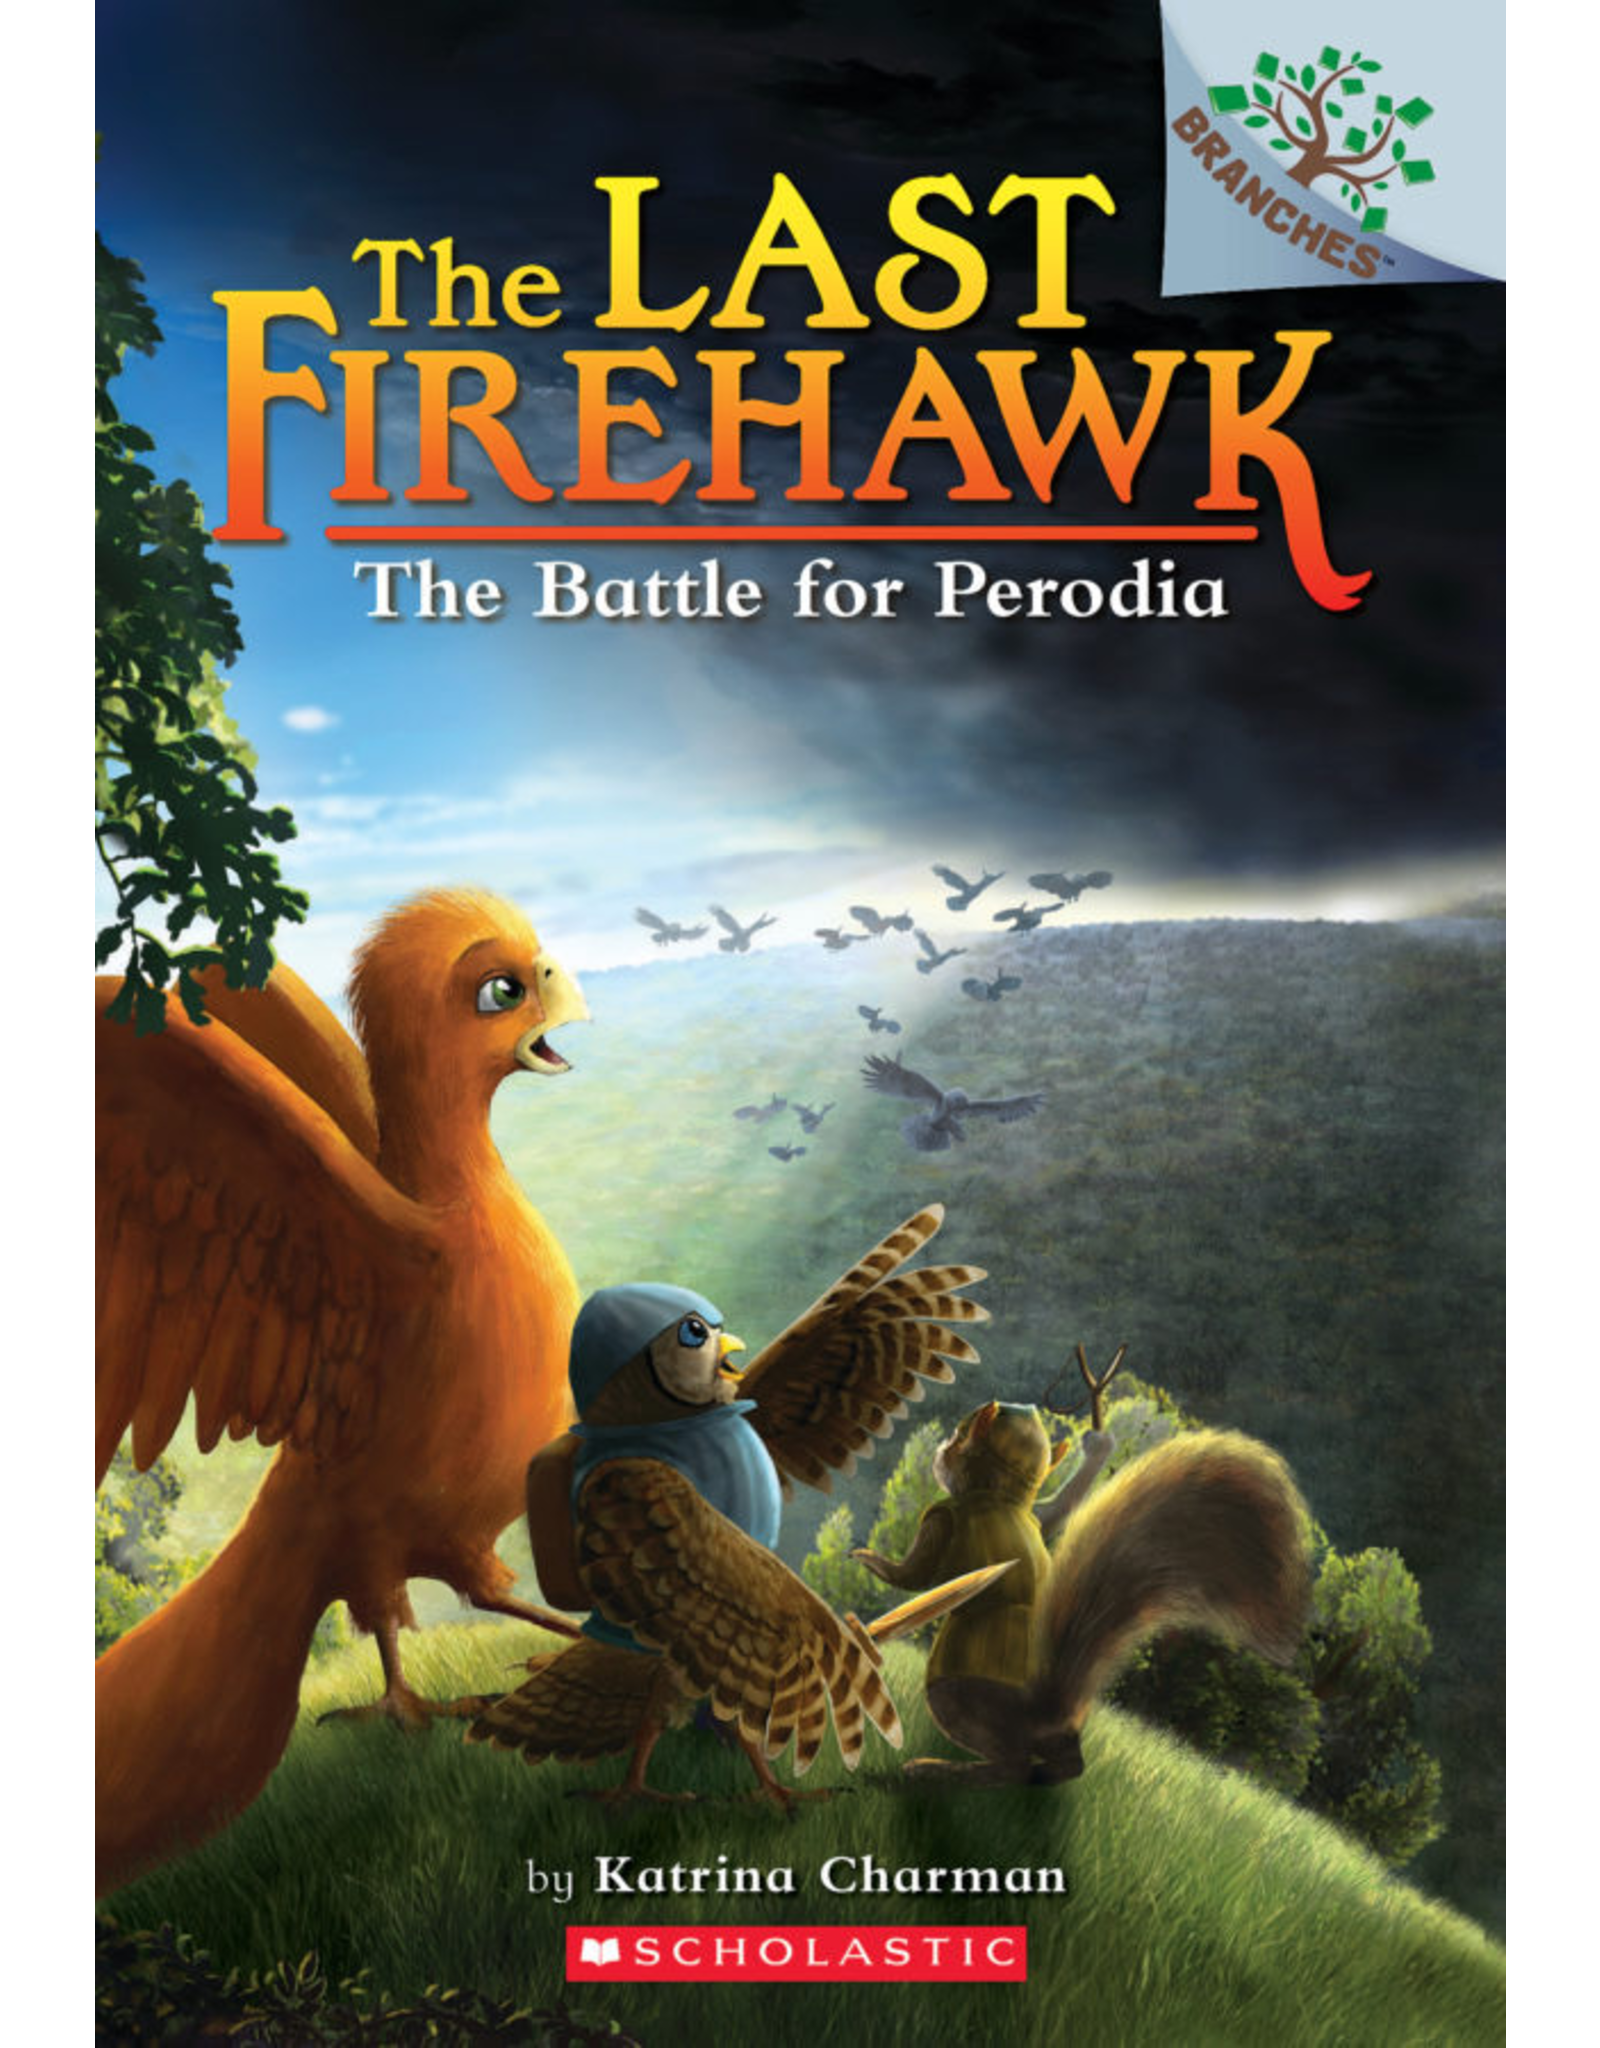 Scholastic LAST FIREHAWK #6 THE BATTLE FOR PERODIA